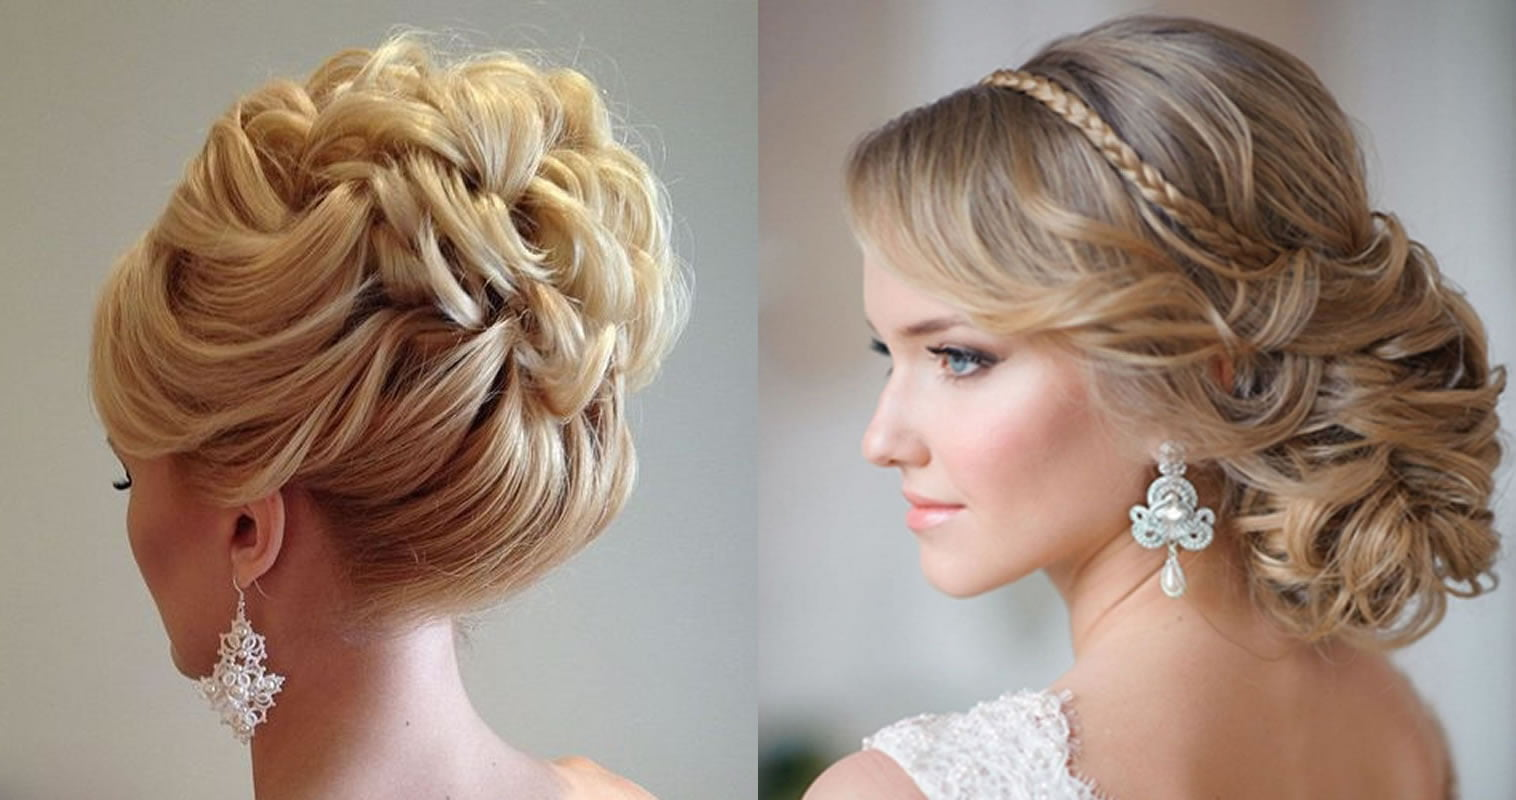 Updo Wedding Hairstyles 2019 - Hair Color Ideas for Bride